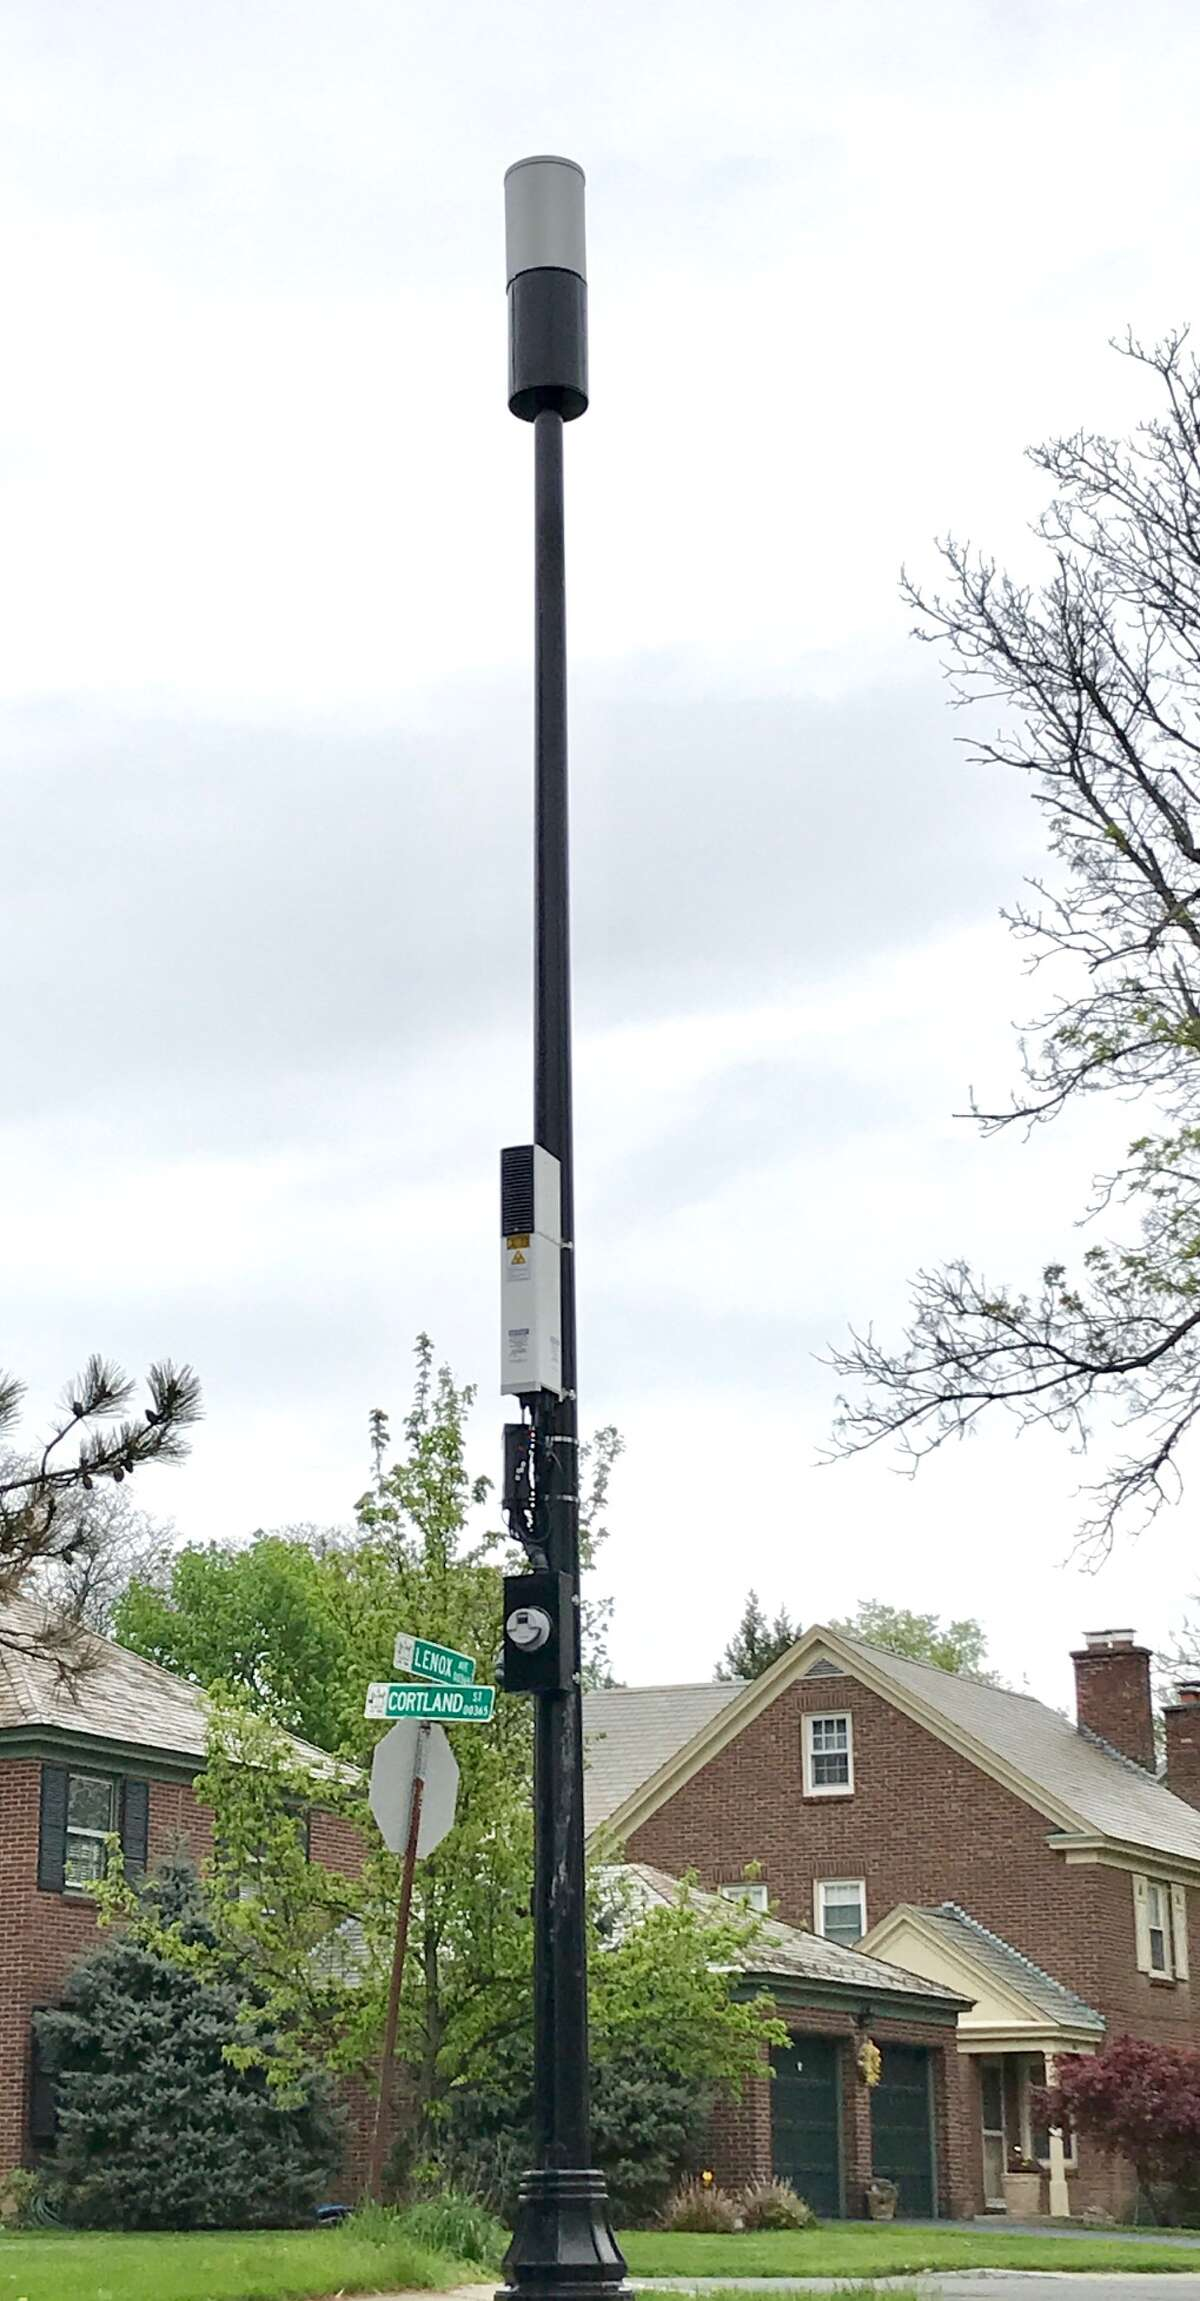 A cell tower at the corner of Lenox Avenue and Cortland Street in Albany's Buckingham Lake neighborhood has drawn concern and activism from neighbors who want a moratorium on the towers (Paul Grondahl / Times